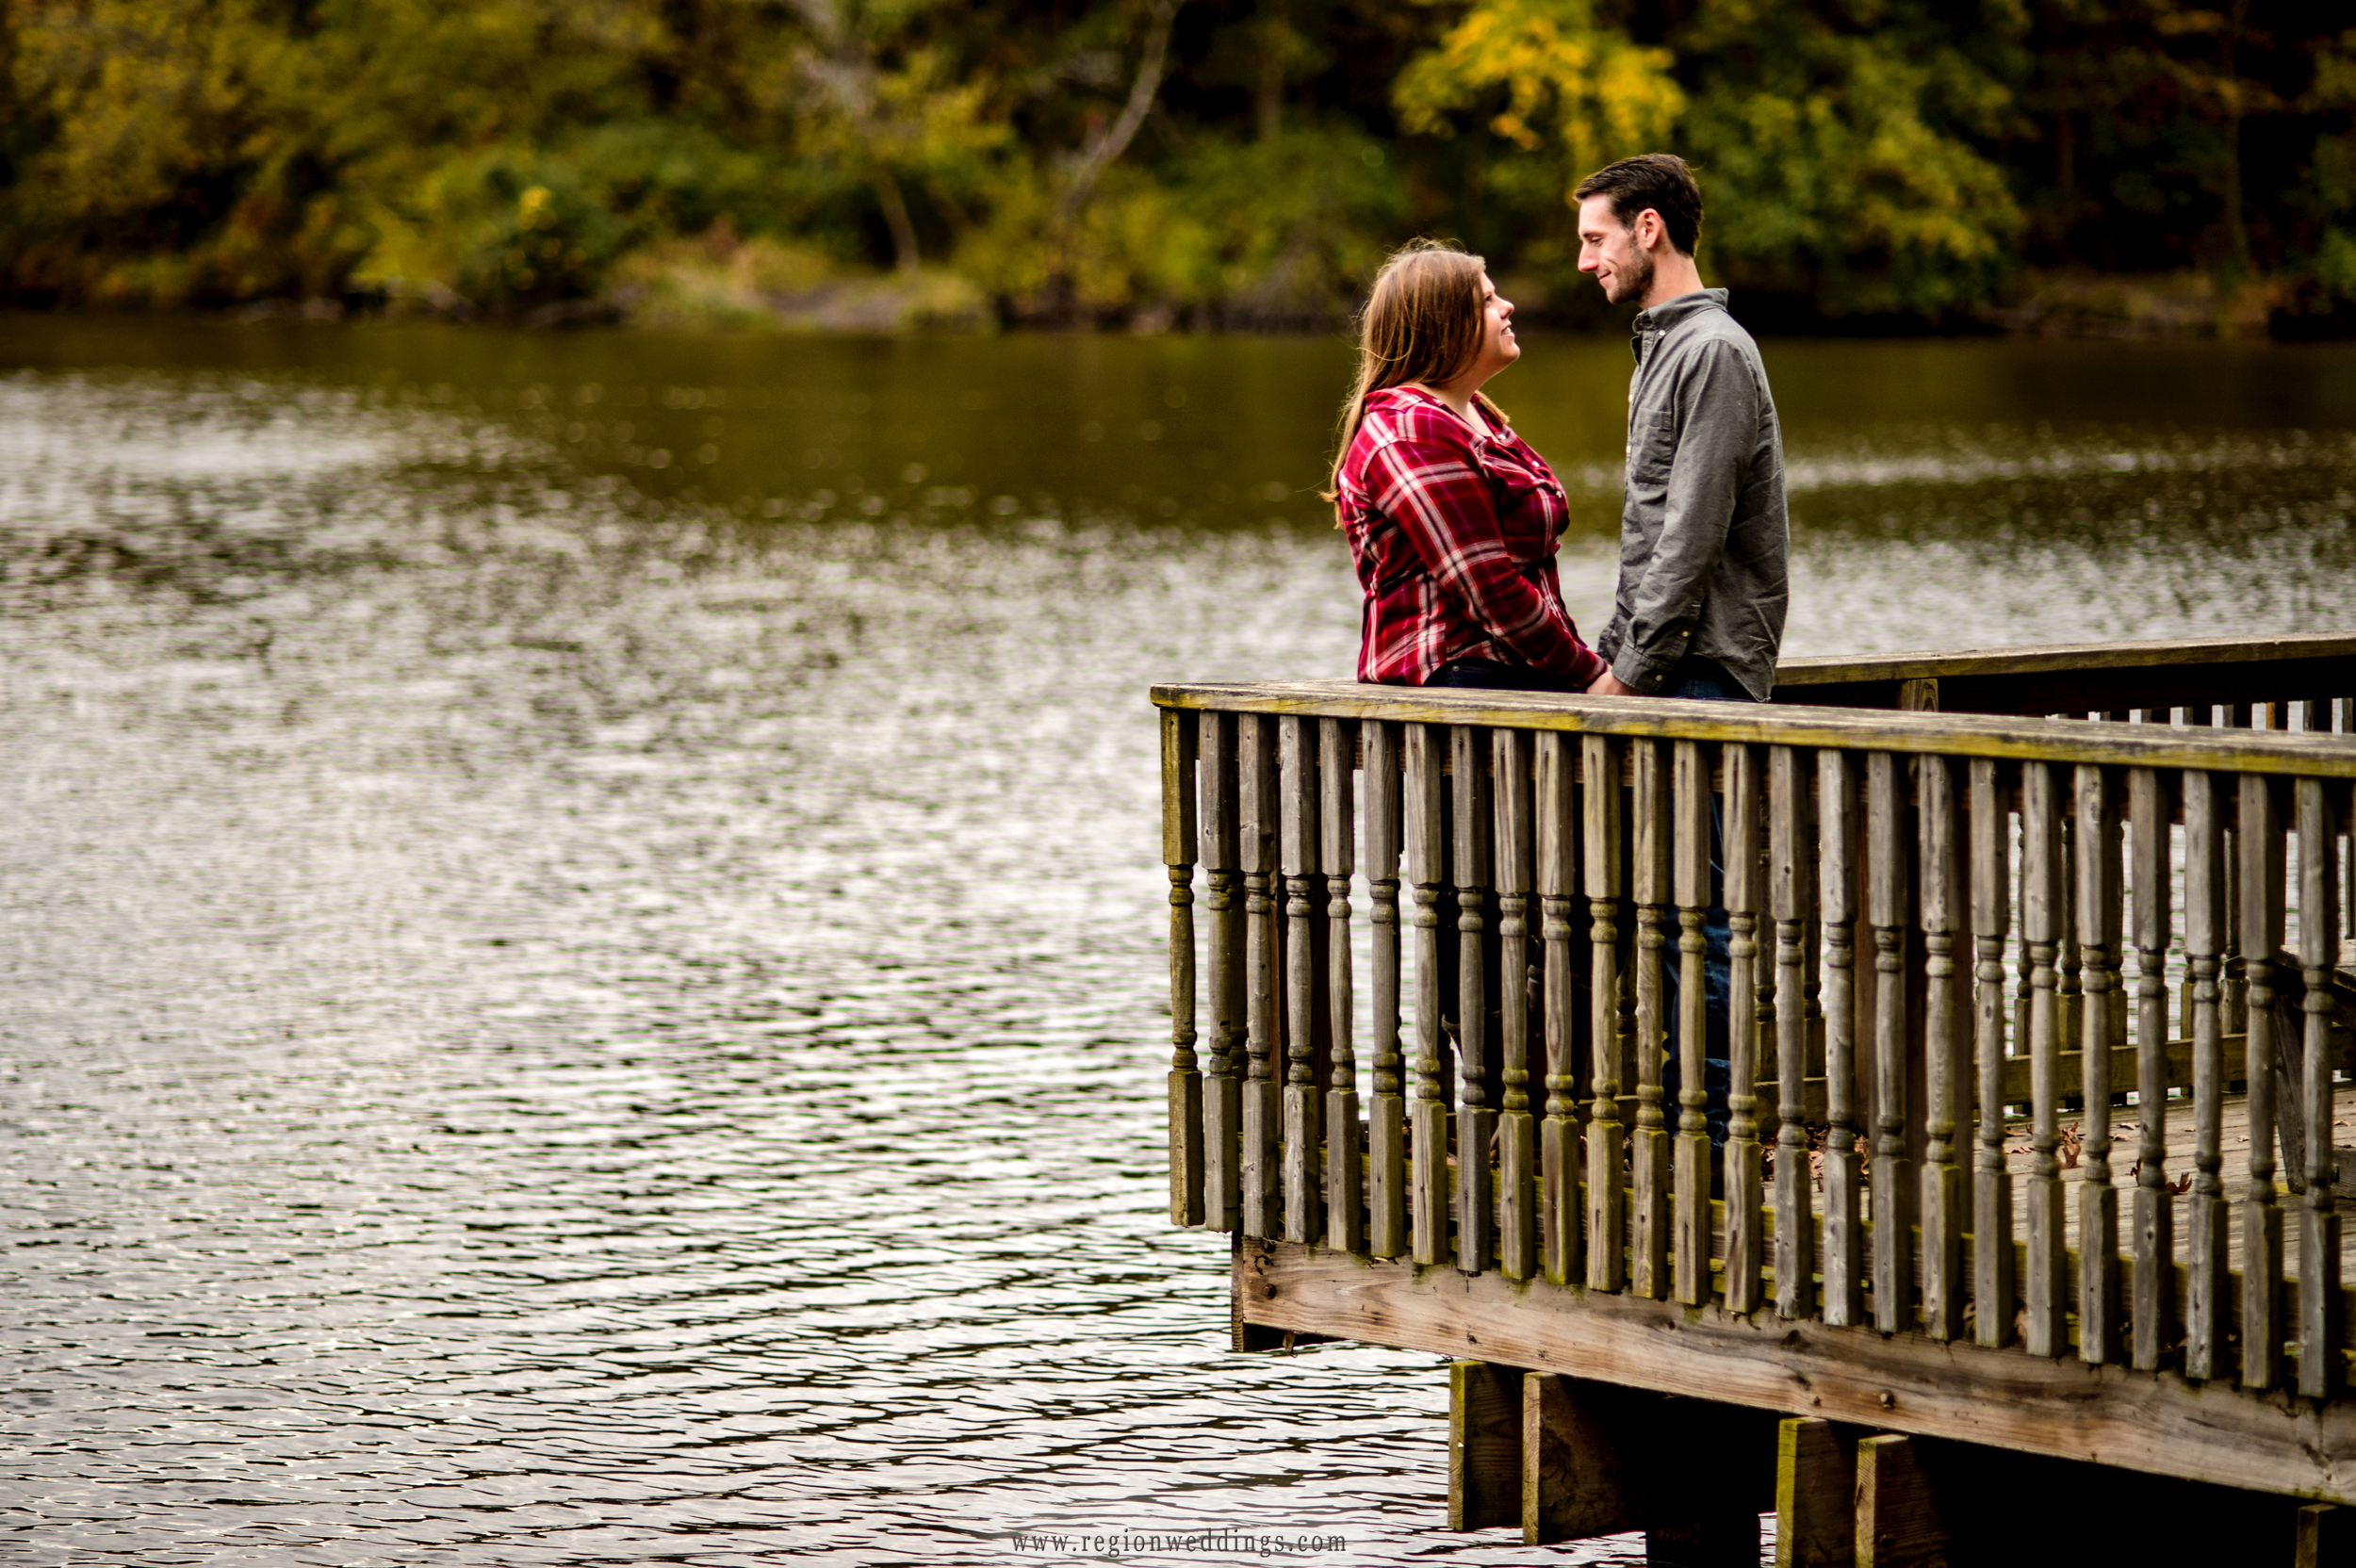 An engaged couple embraces at the edge of the pier at Lemon Lake County Park.